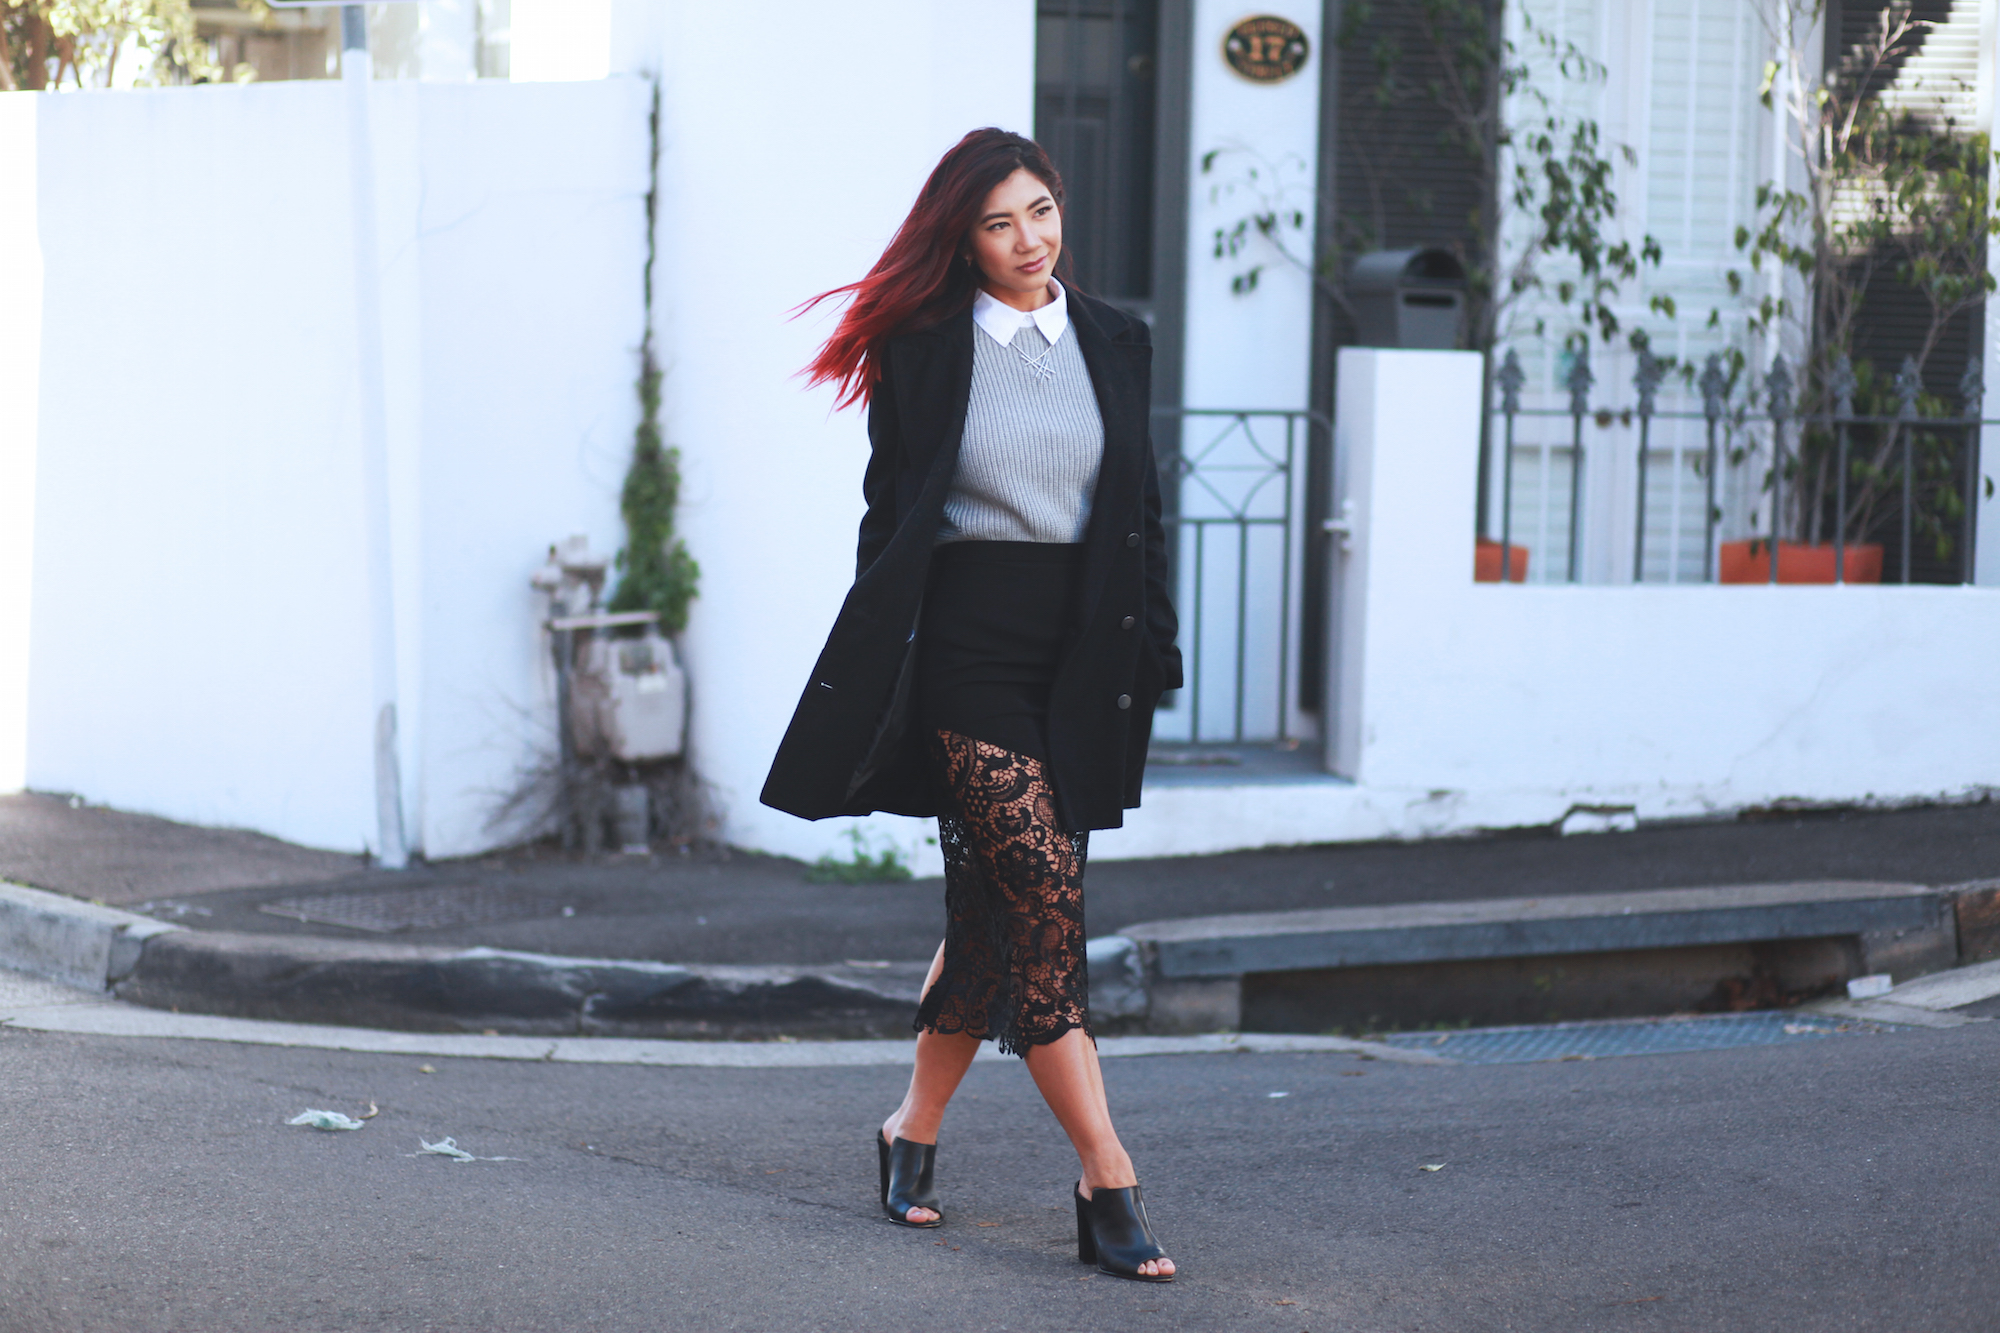 jessie-khoo-fashion-and-sounds-lifewithbird-rubyseesall